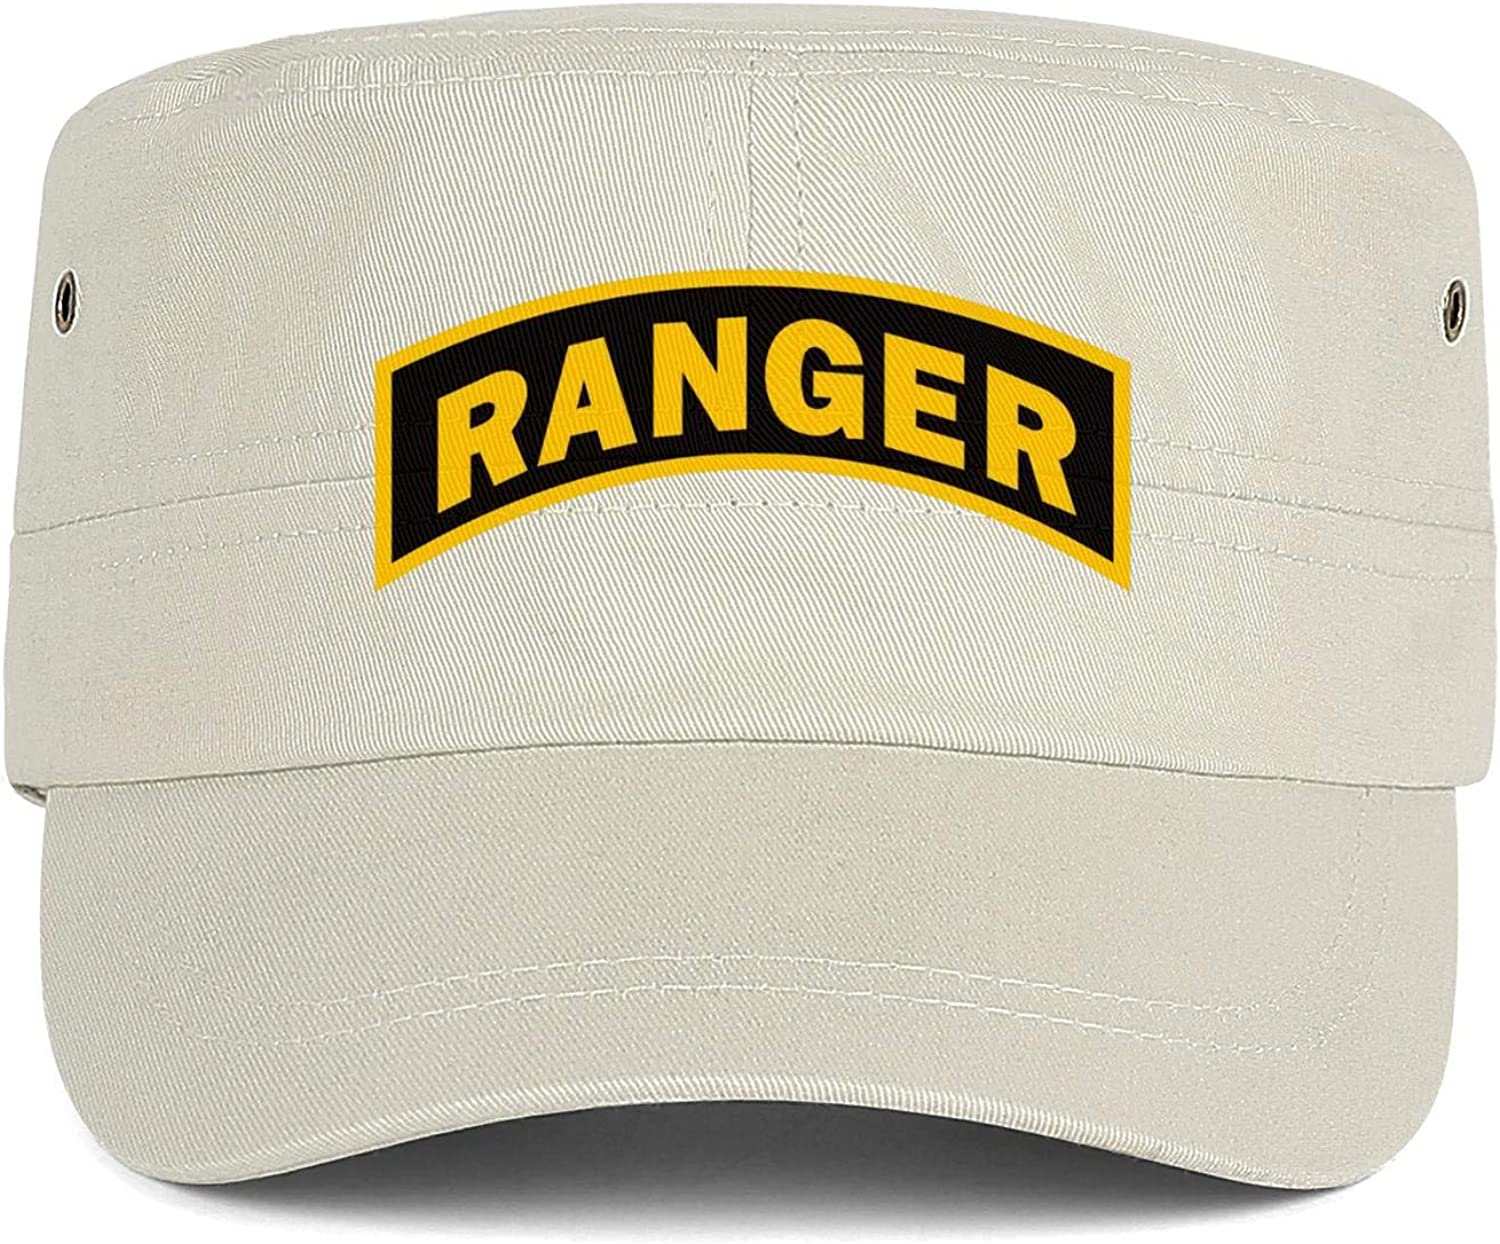 United States Army Rangers Army Cap Cadet Corps Hat Military Flat Top Adjustable Baseball Cap Cotton